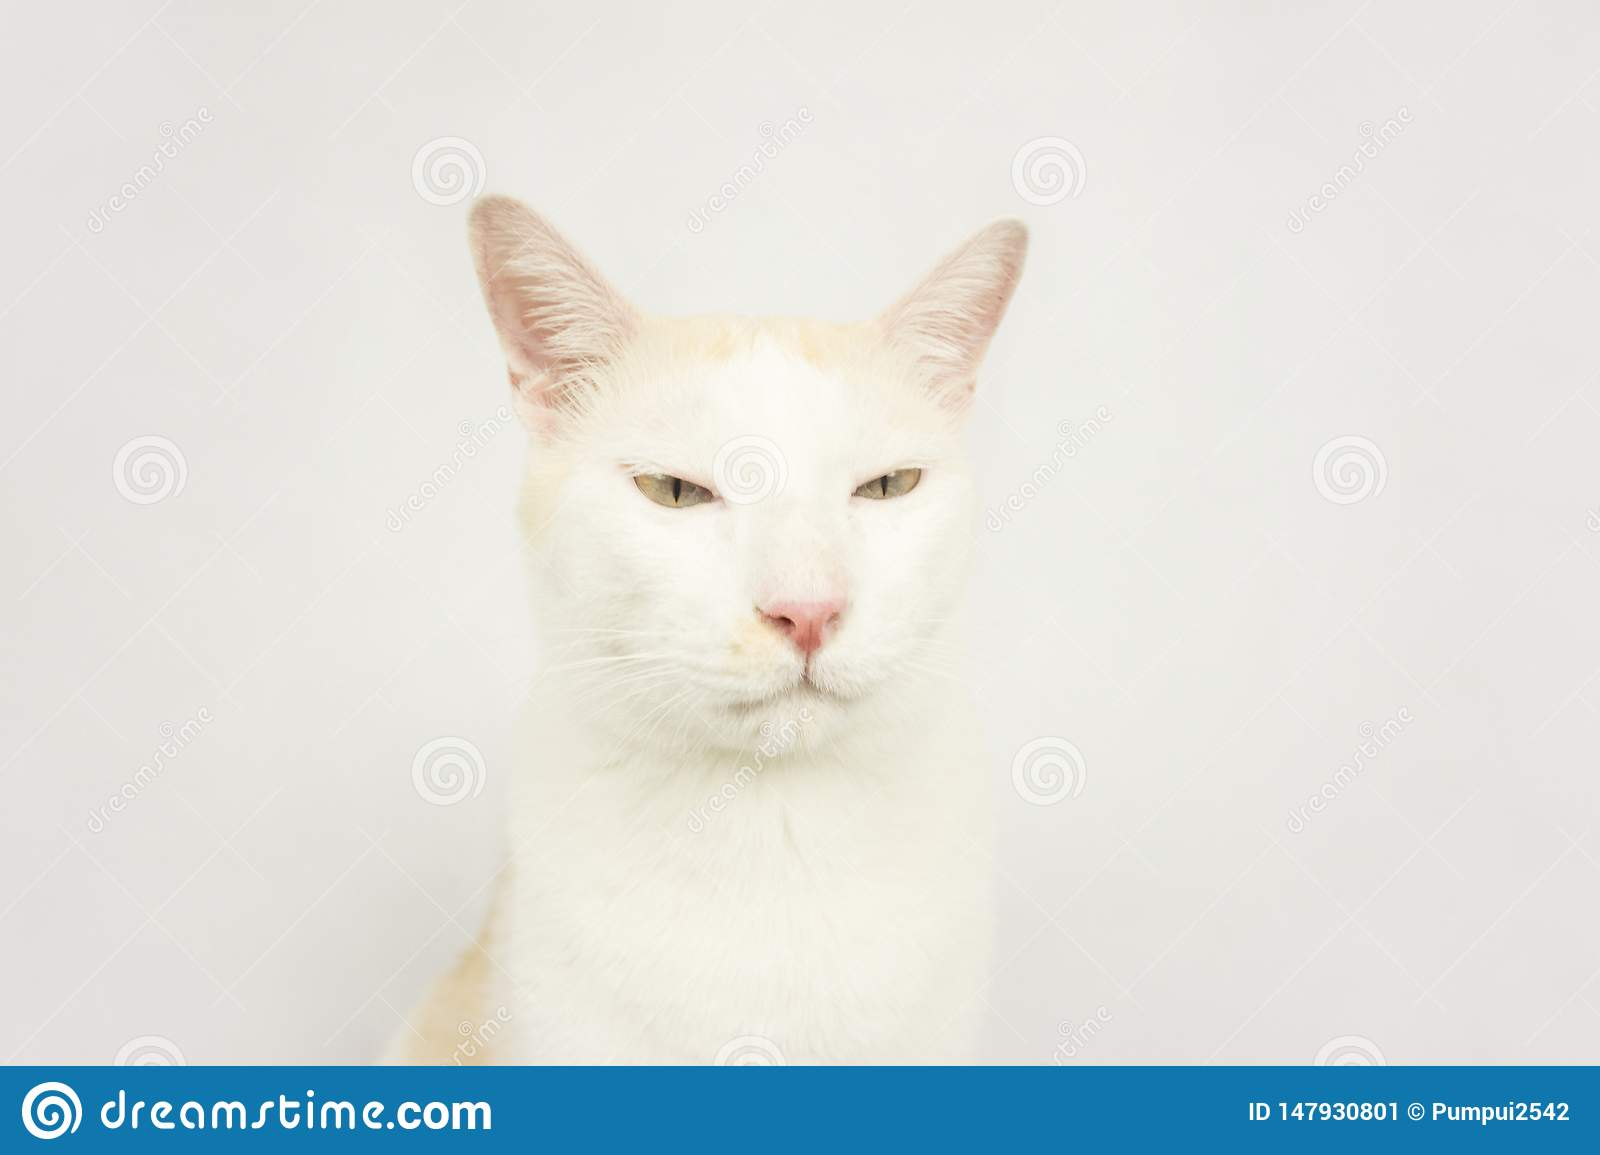 White cat with a white background